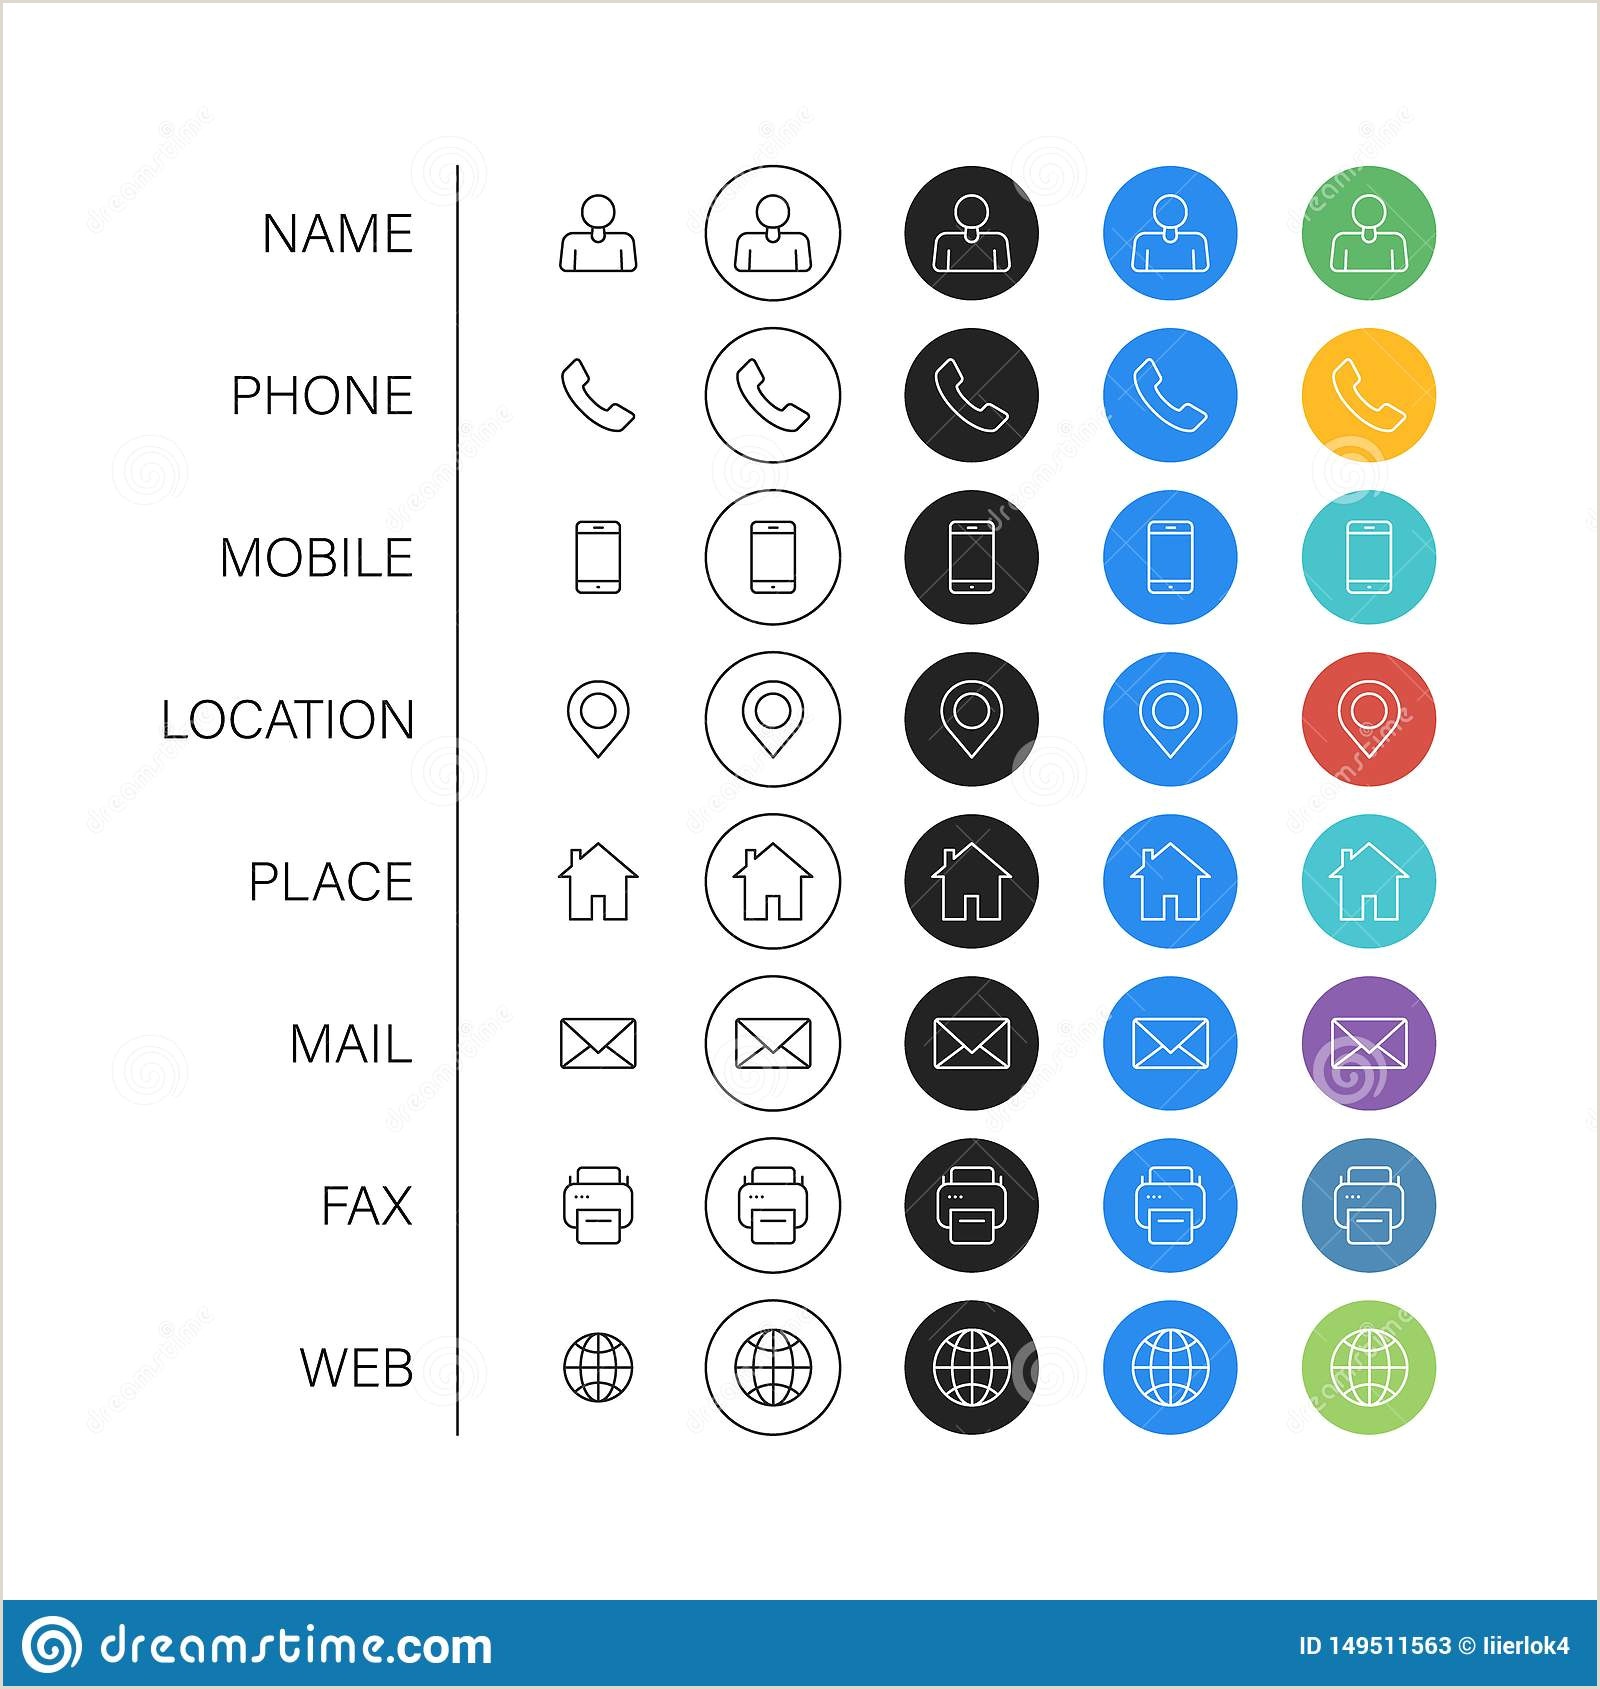 Phone Icon For Business Card Business Card Icons Stock Illustrations – 91 662 Business